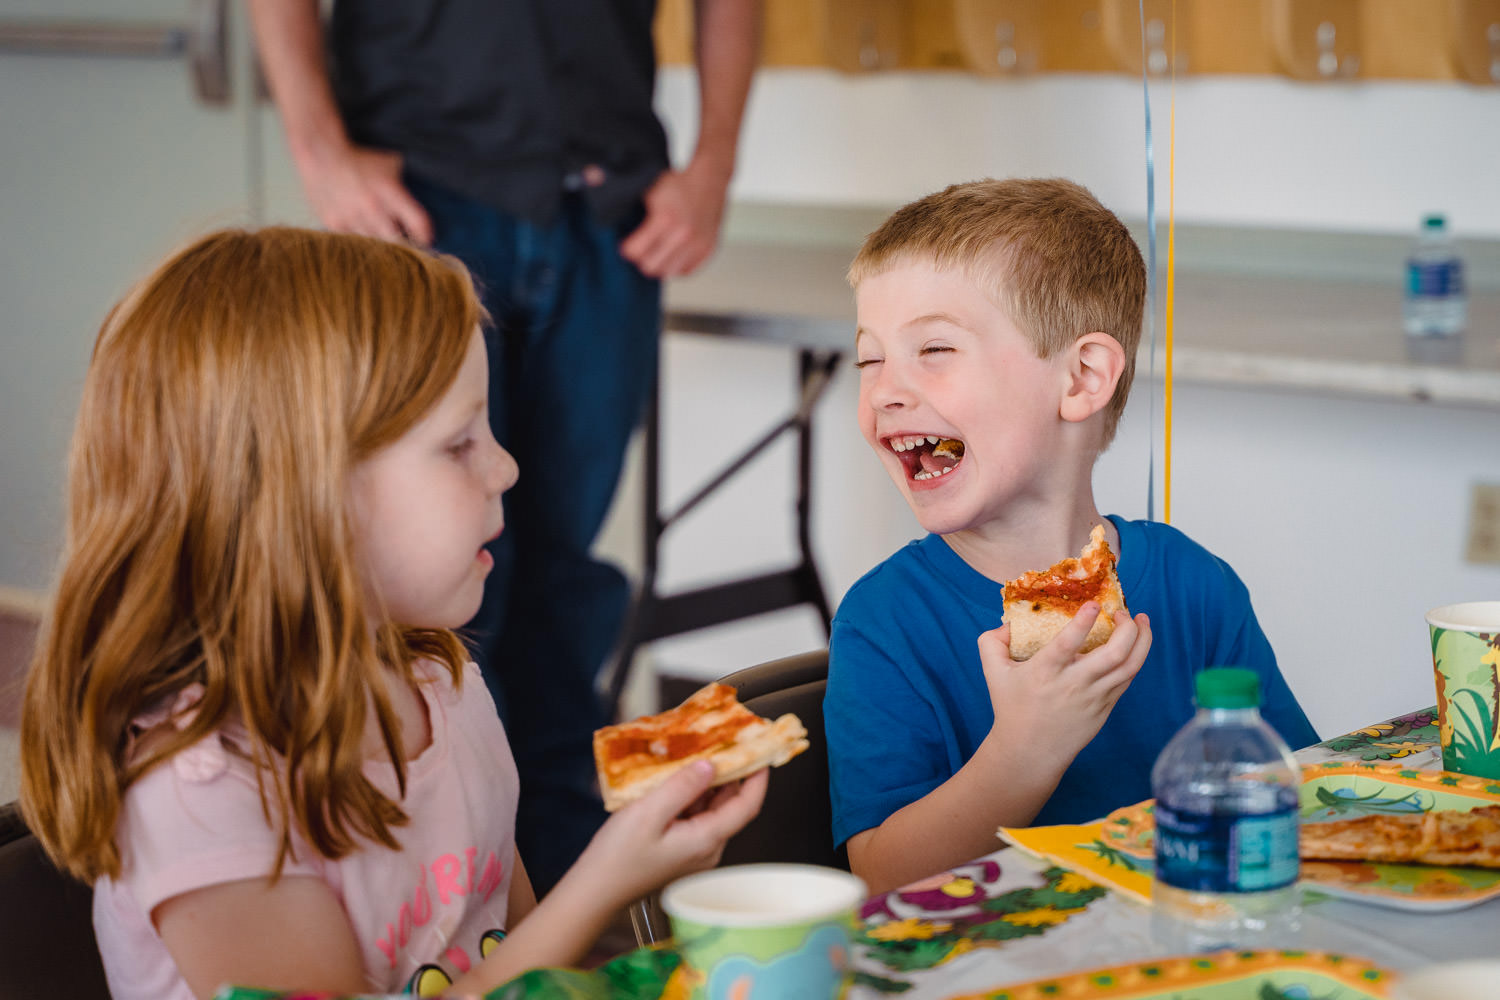 A boy and a girl laugh while eating pizza.